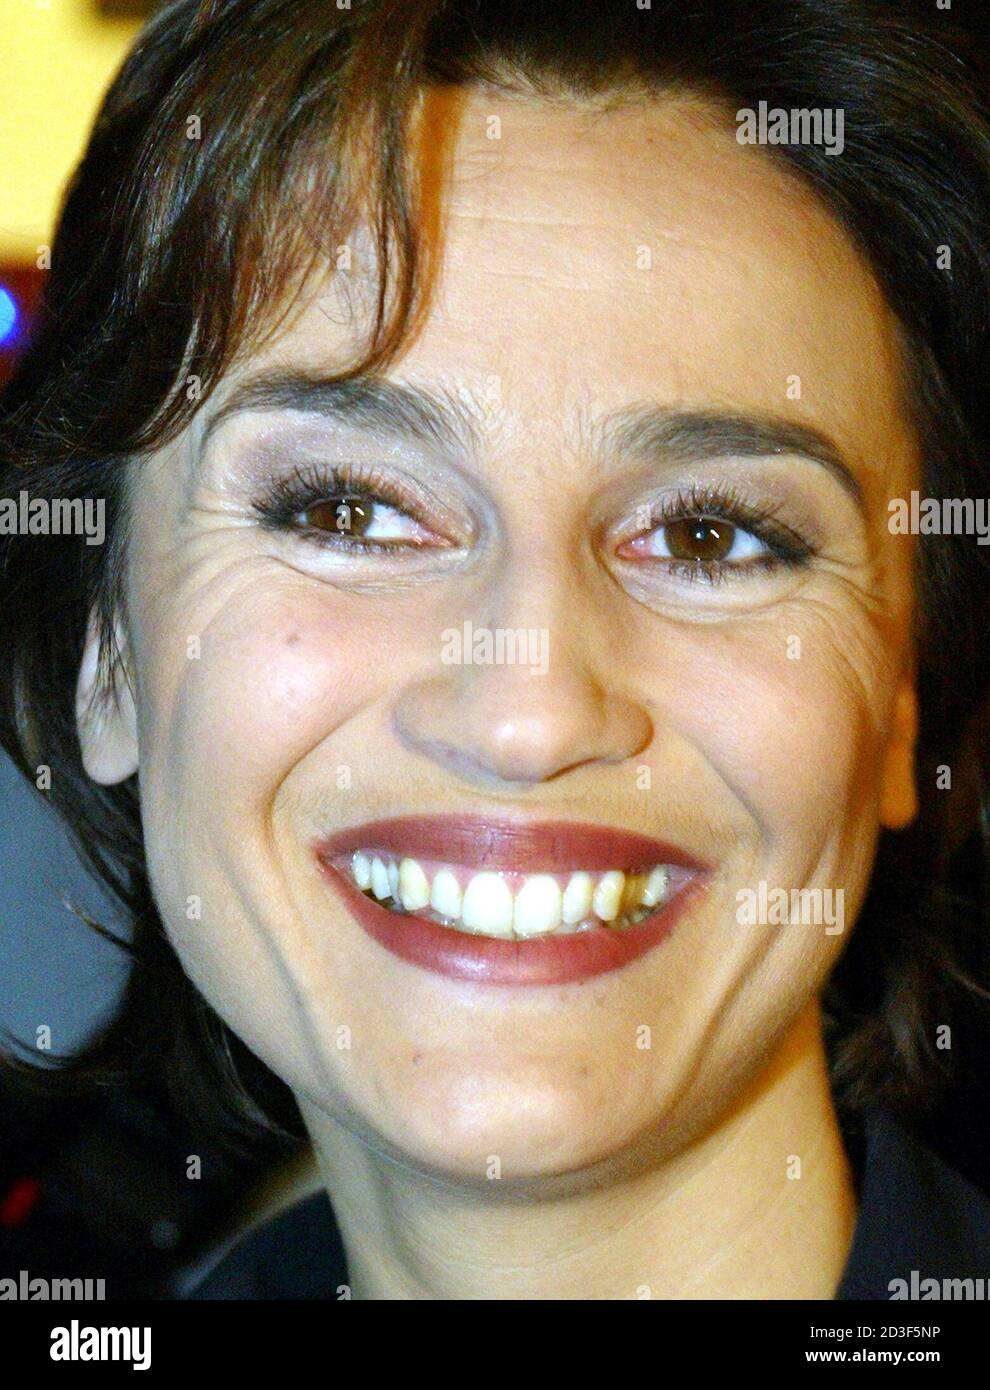 Sandra Maischberger, German television presenter from the NTV broadcasting station looks on during a reception in Berlin January 20, 2003. [Maischberger attended a celebration for the 65th birthday of Paul Spiegel, president of the German Jew Council.] Stock Photo